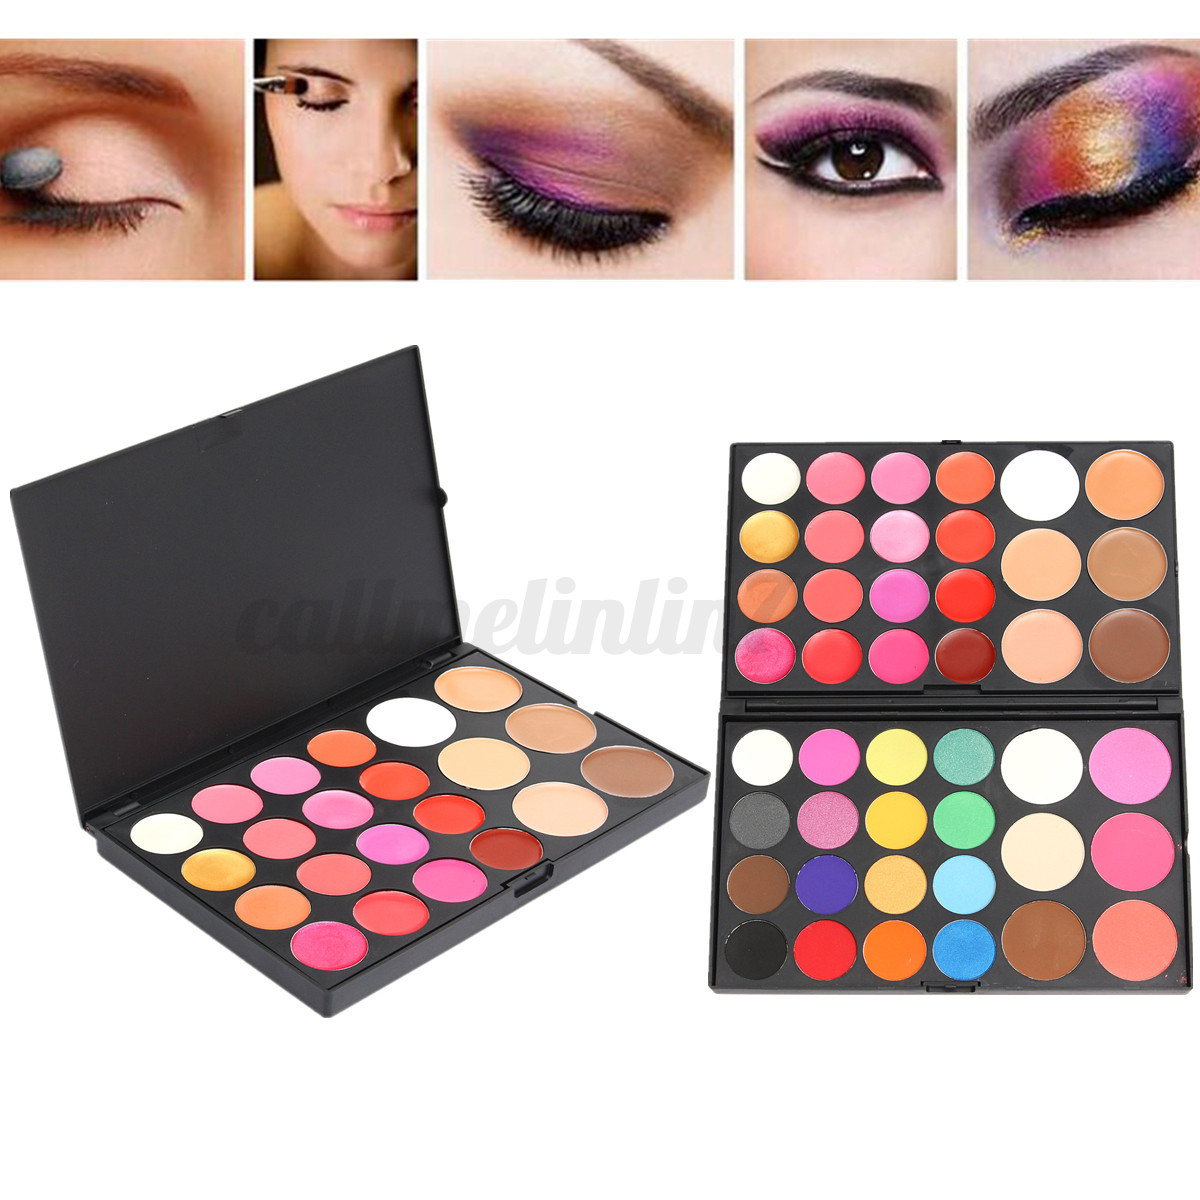 chaud palette fard ombre paupi res mat glitter yeux smoky eyeshadow maquillage ebay. Black Bedroom Furniture Sets. Home Design Ideas